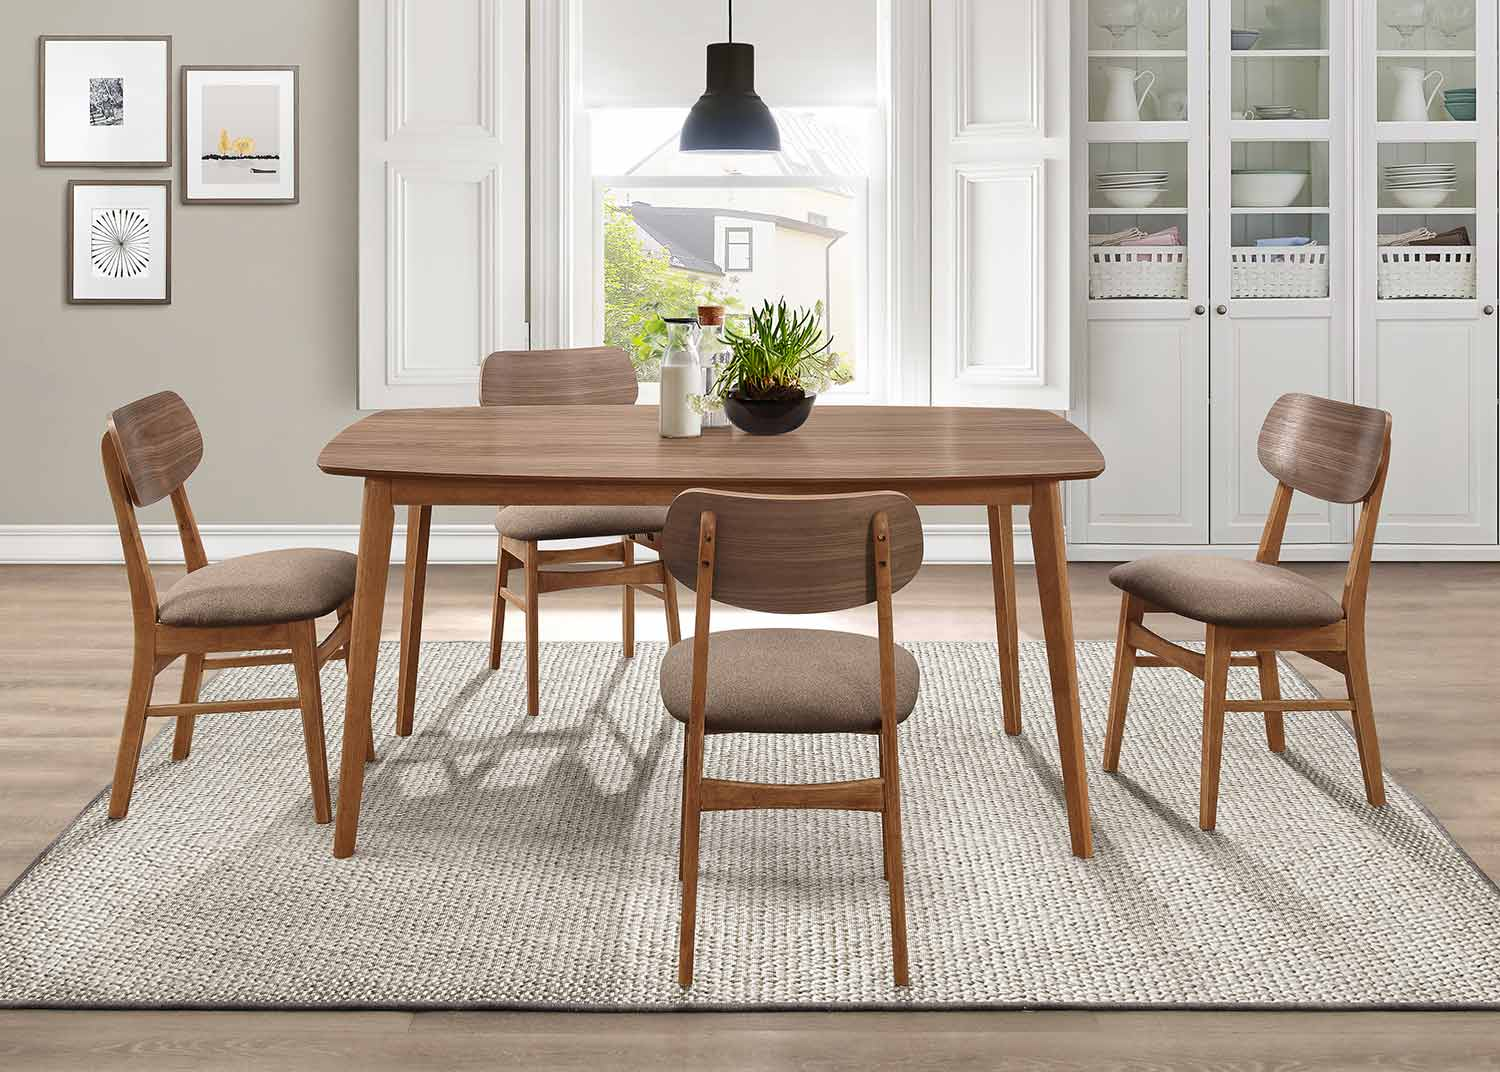 Homelegance Paran Dining Set - Natural Walnut